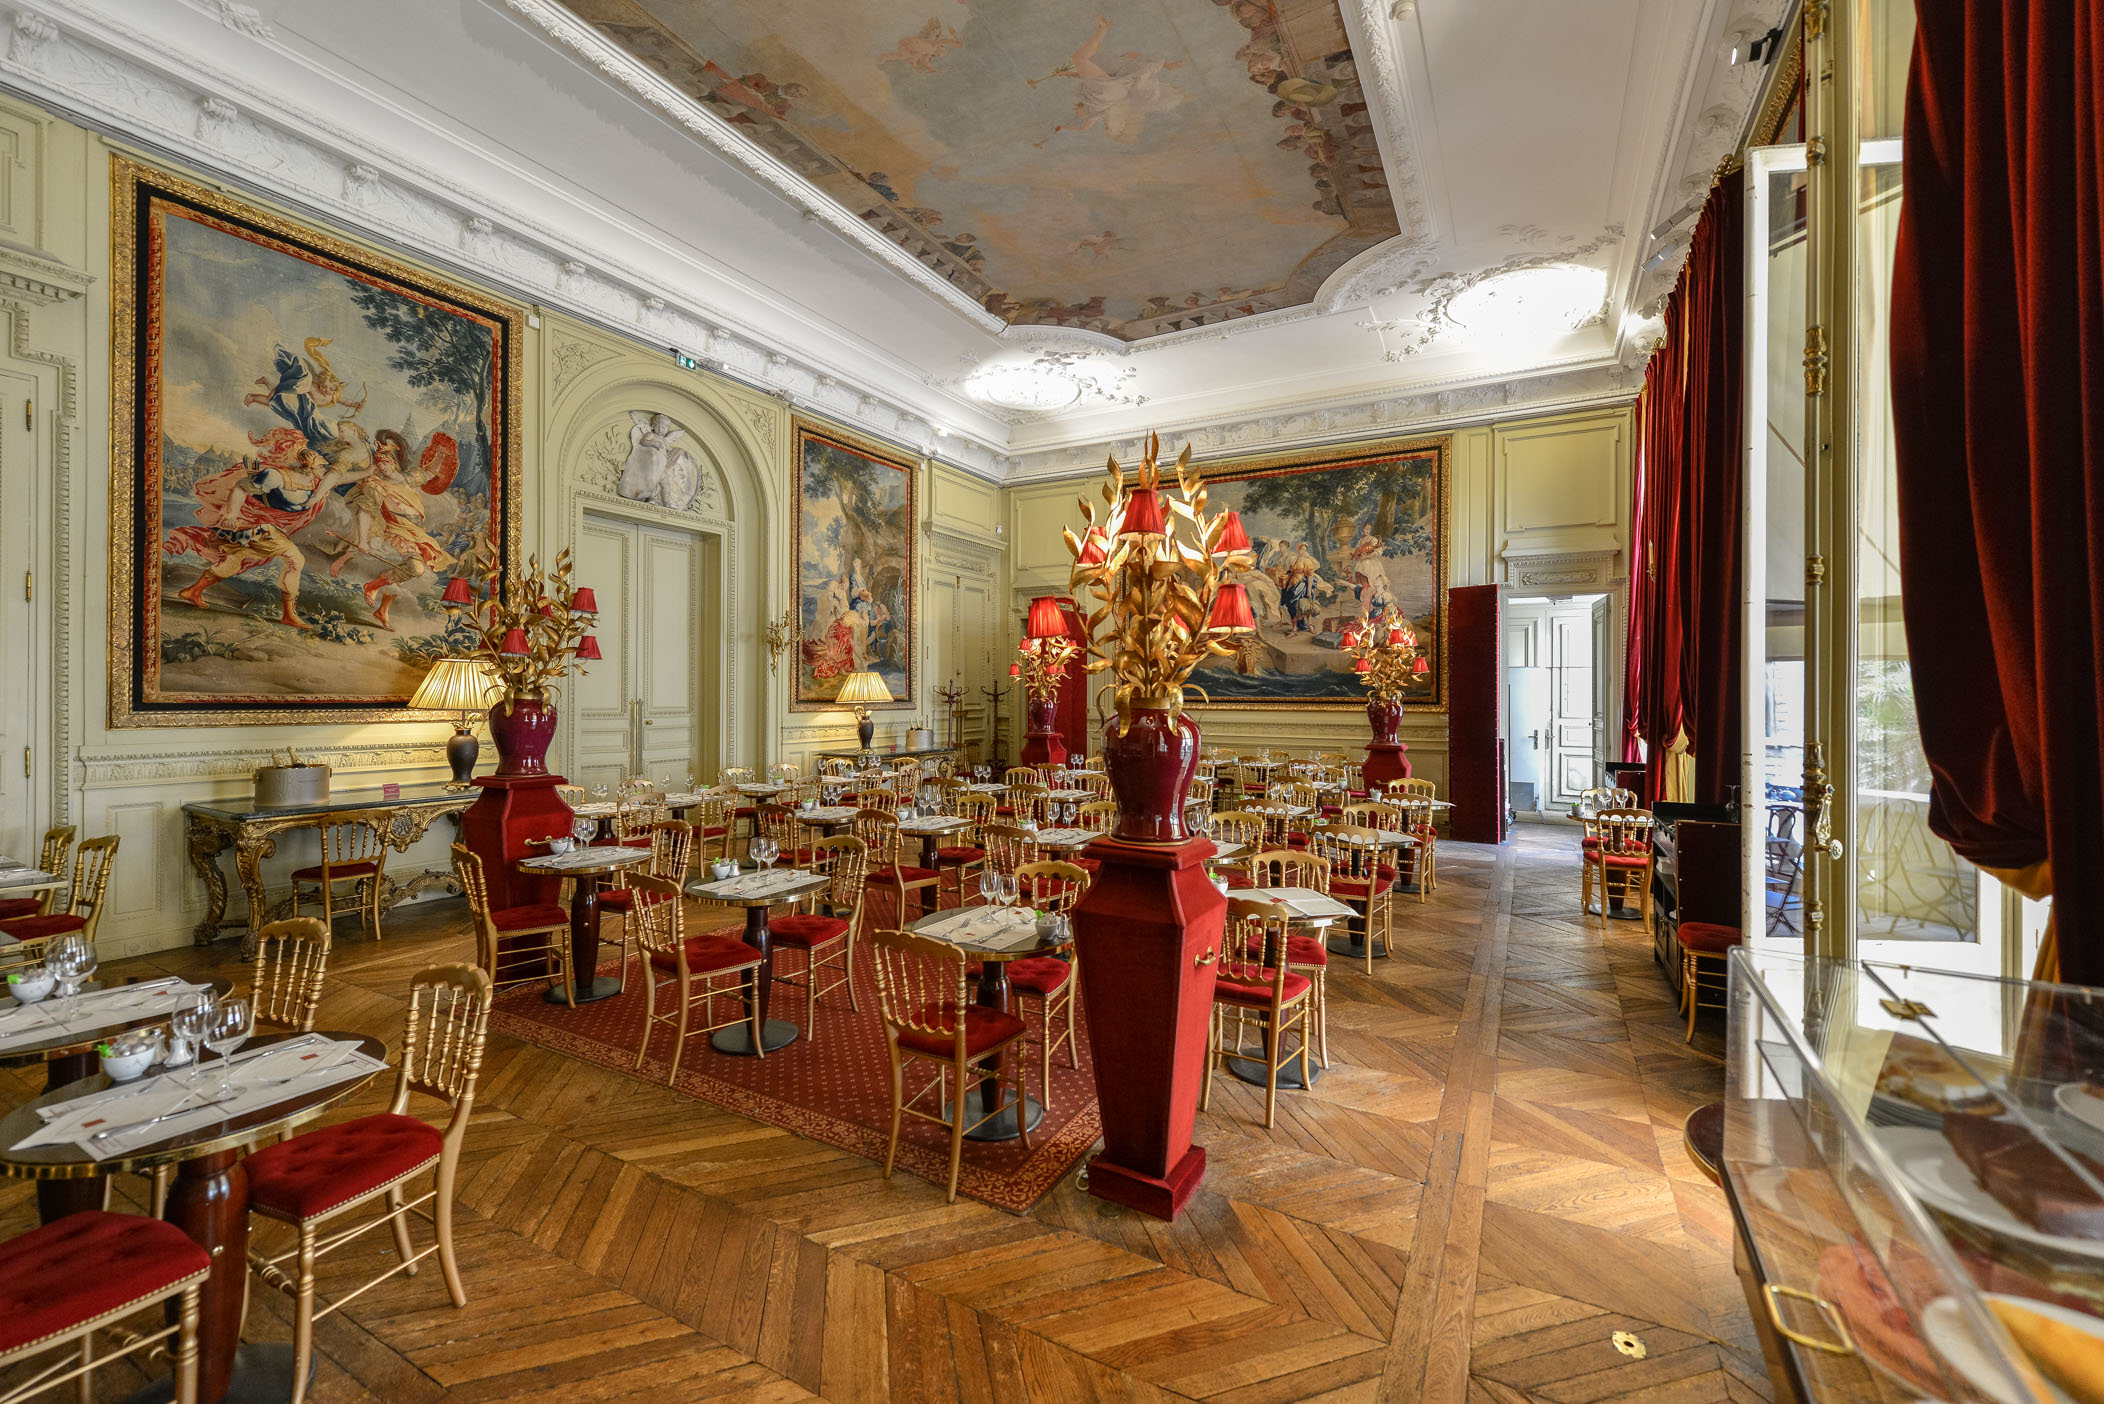 La Salle A Manger Of Jacquemart Andr Museum One Of The Most Elegant Museum In